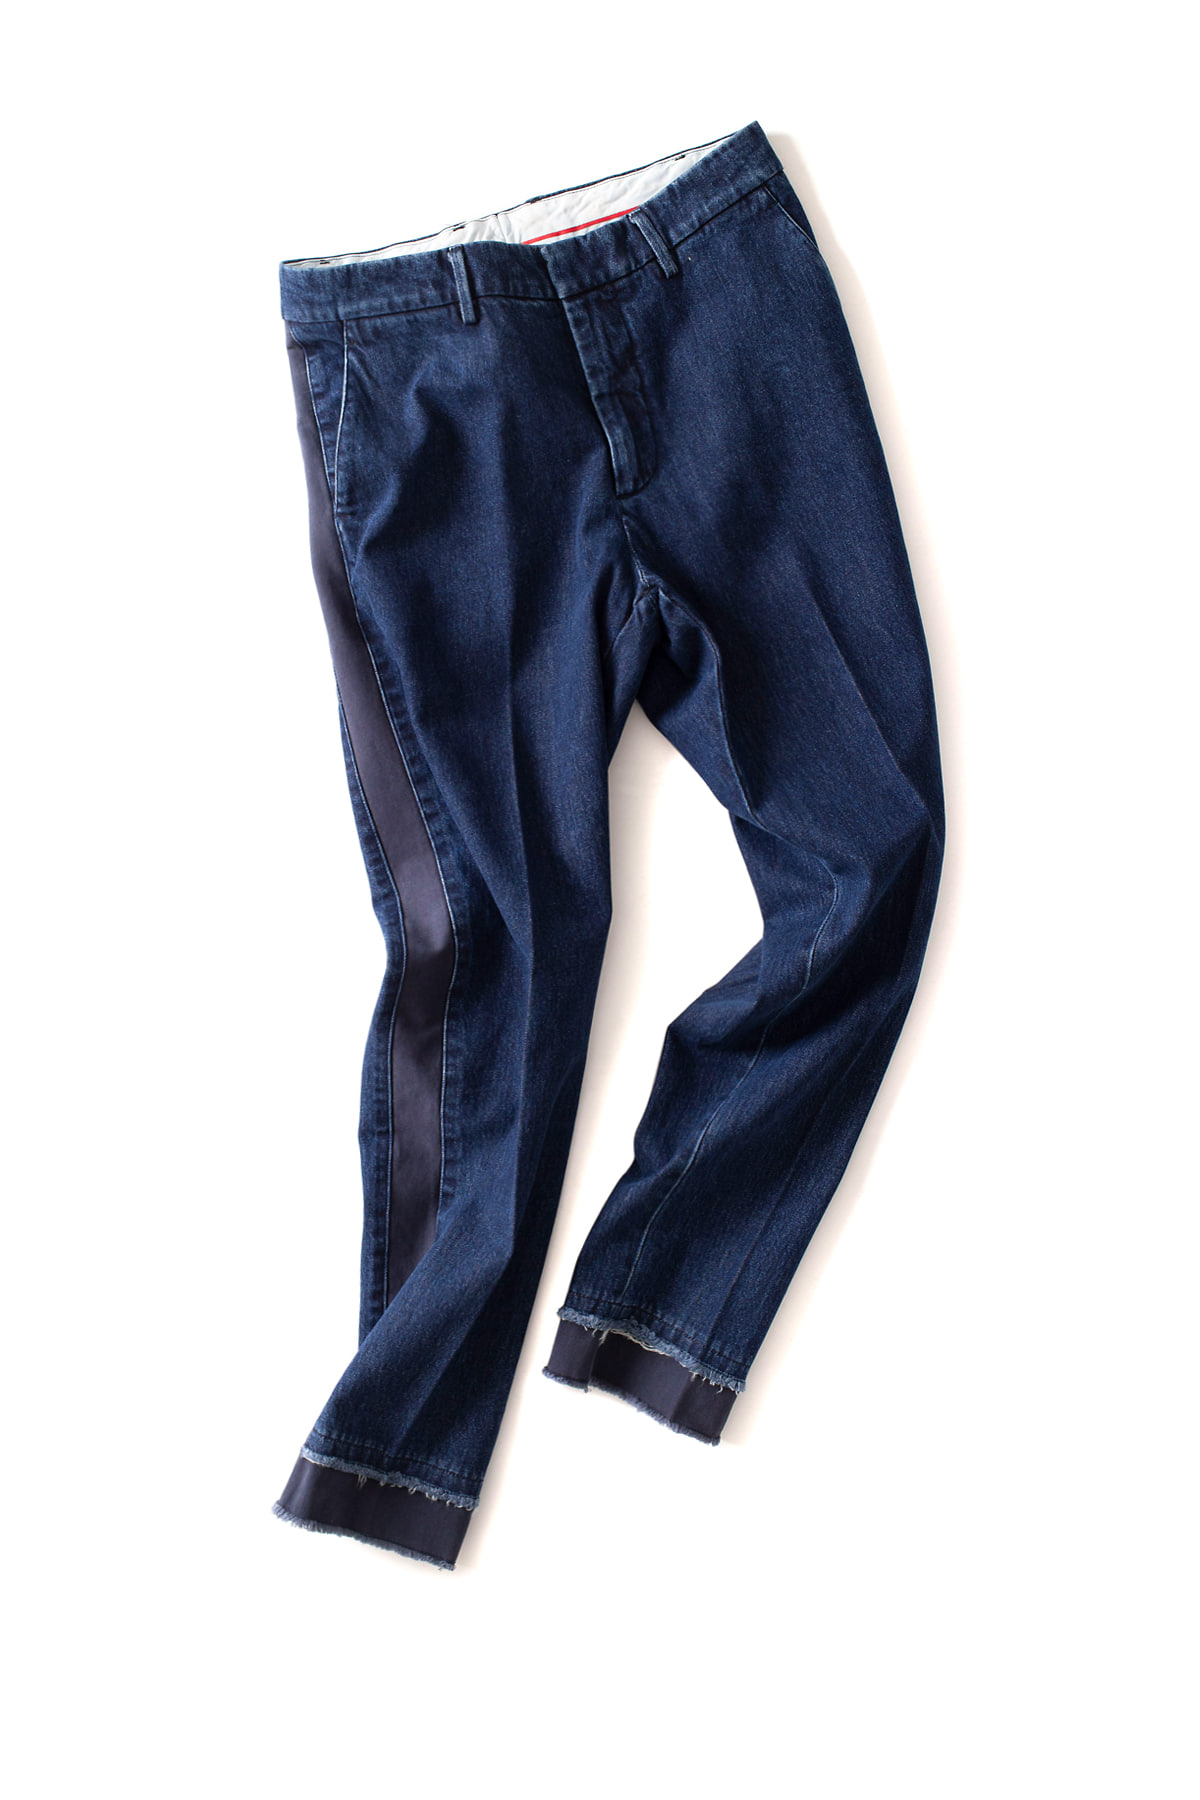 THE EDITOR : Woven Man Trousers 5459 (Denim)